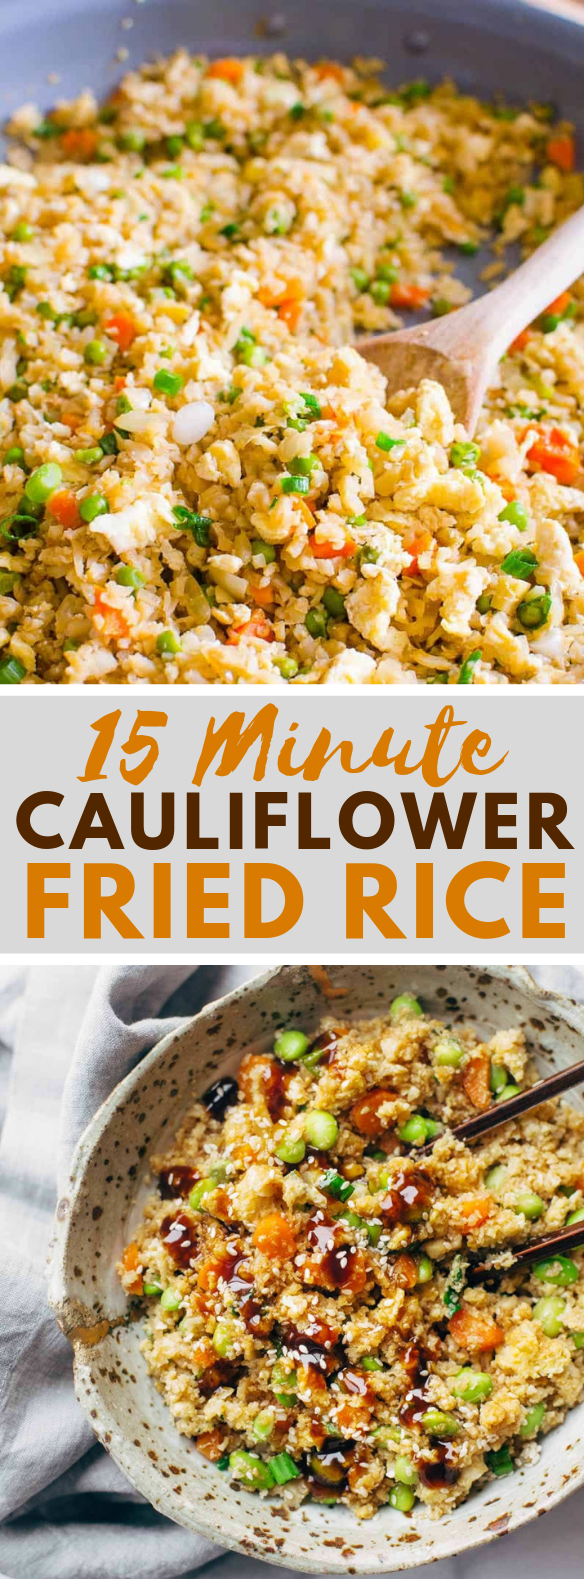 15 Minute Cauliflower Fried Rice #vegetarian #glutenfree